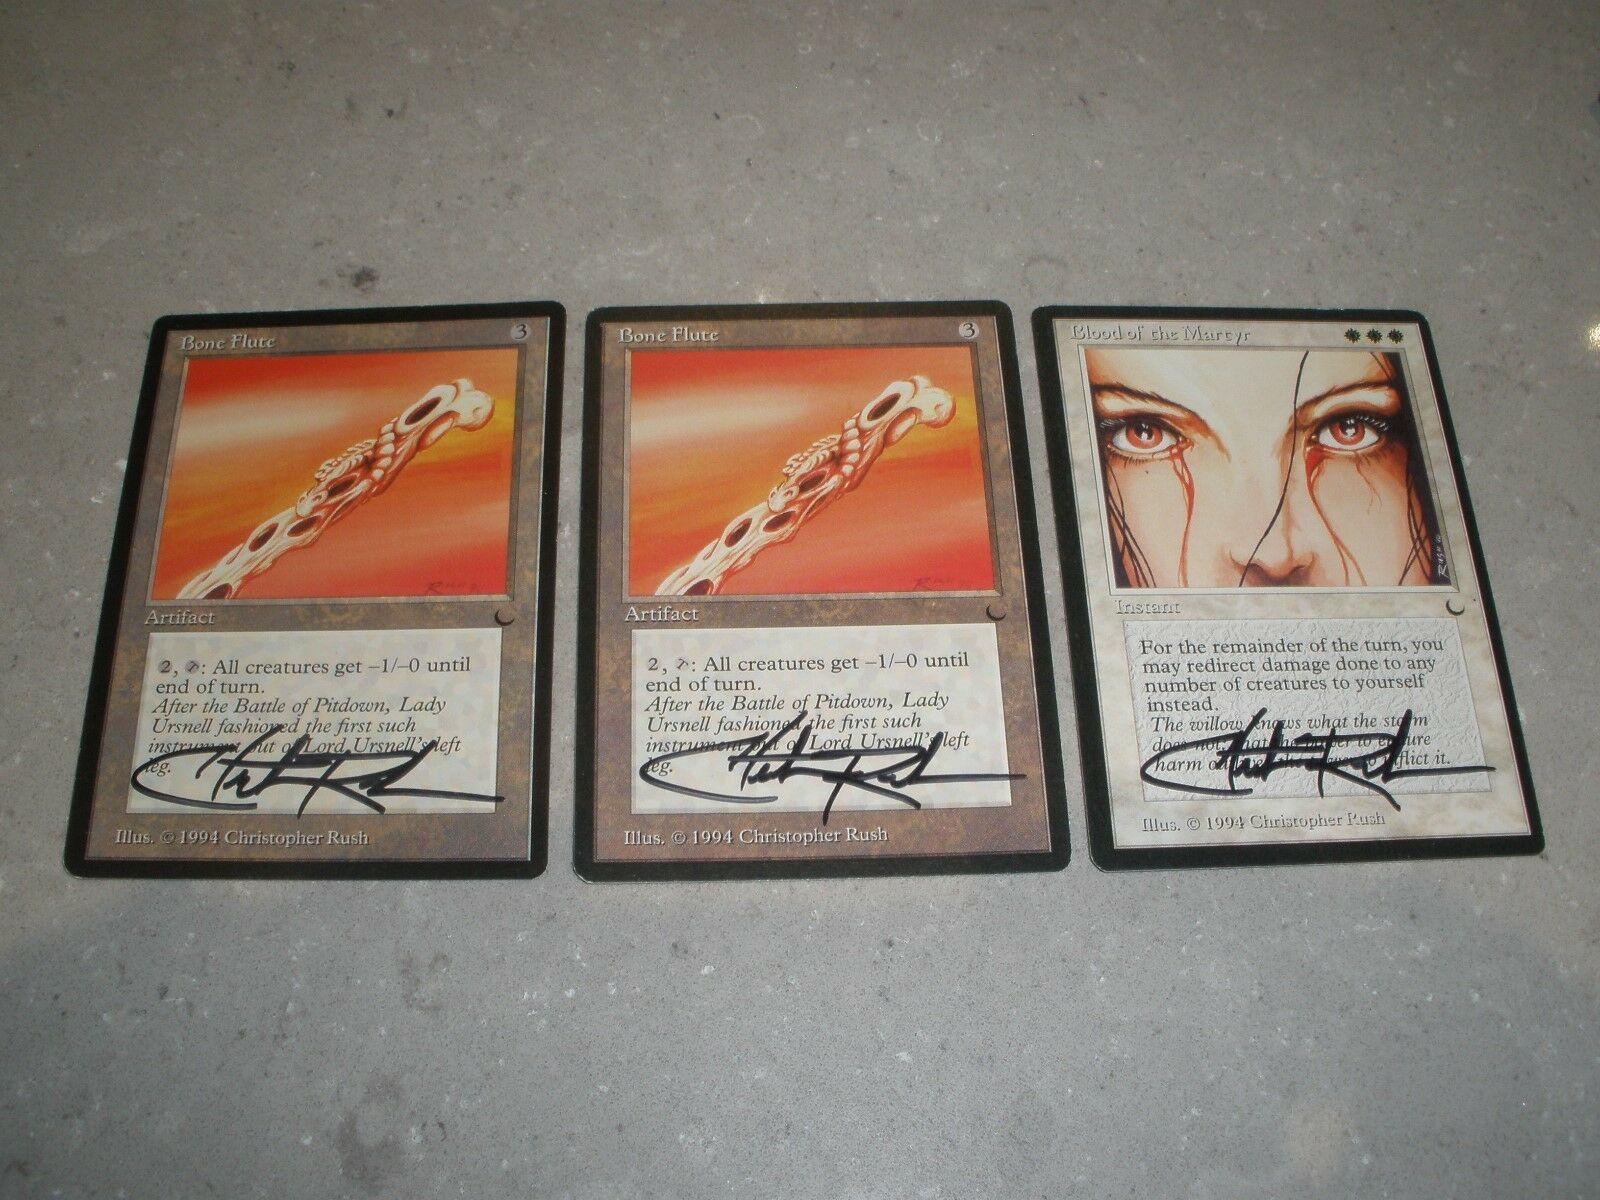 MTG Magic Artist Christopher Rush Signed Blood of the Martyr x1 Bone Flute x2 NM